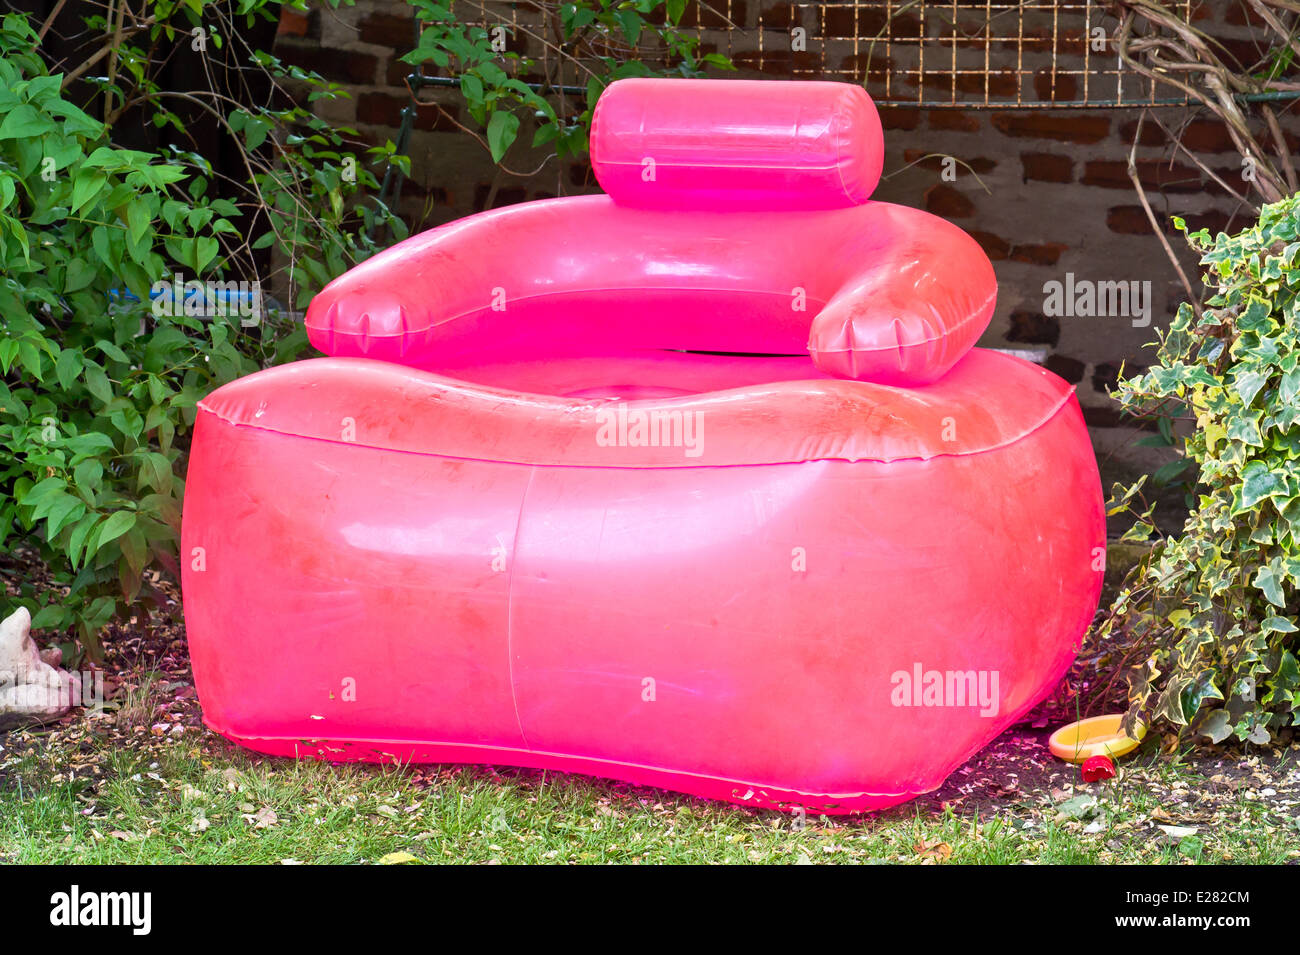 inflatable lawn chair wooden high nz a pink in garden stock photo royalty